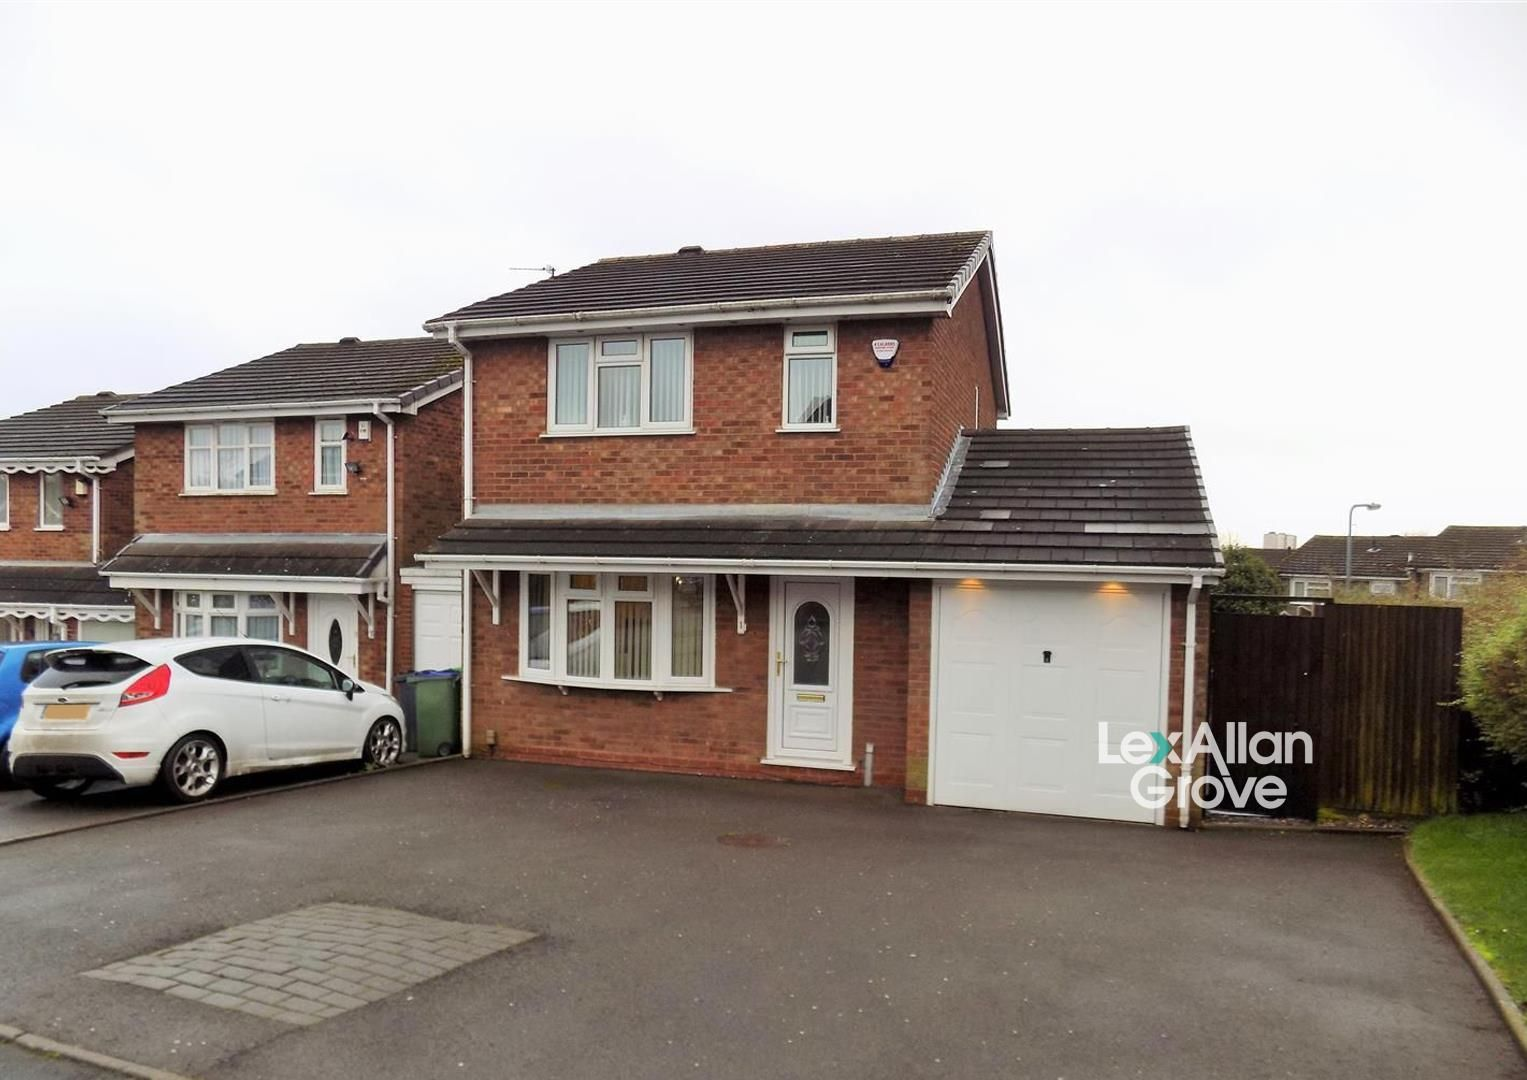 3 bed detached for sale, B65